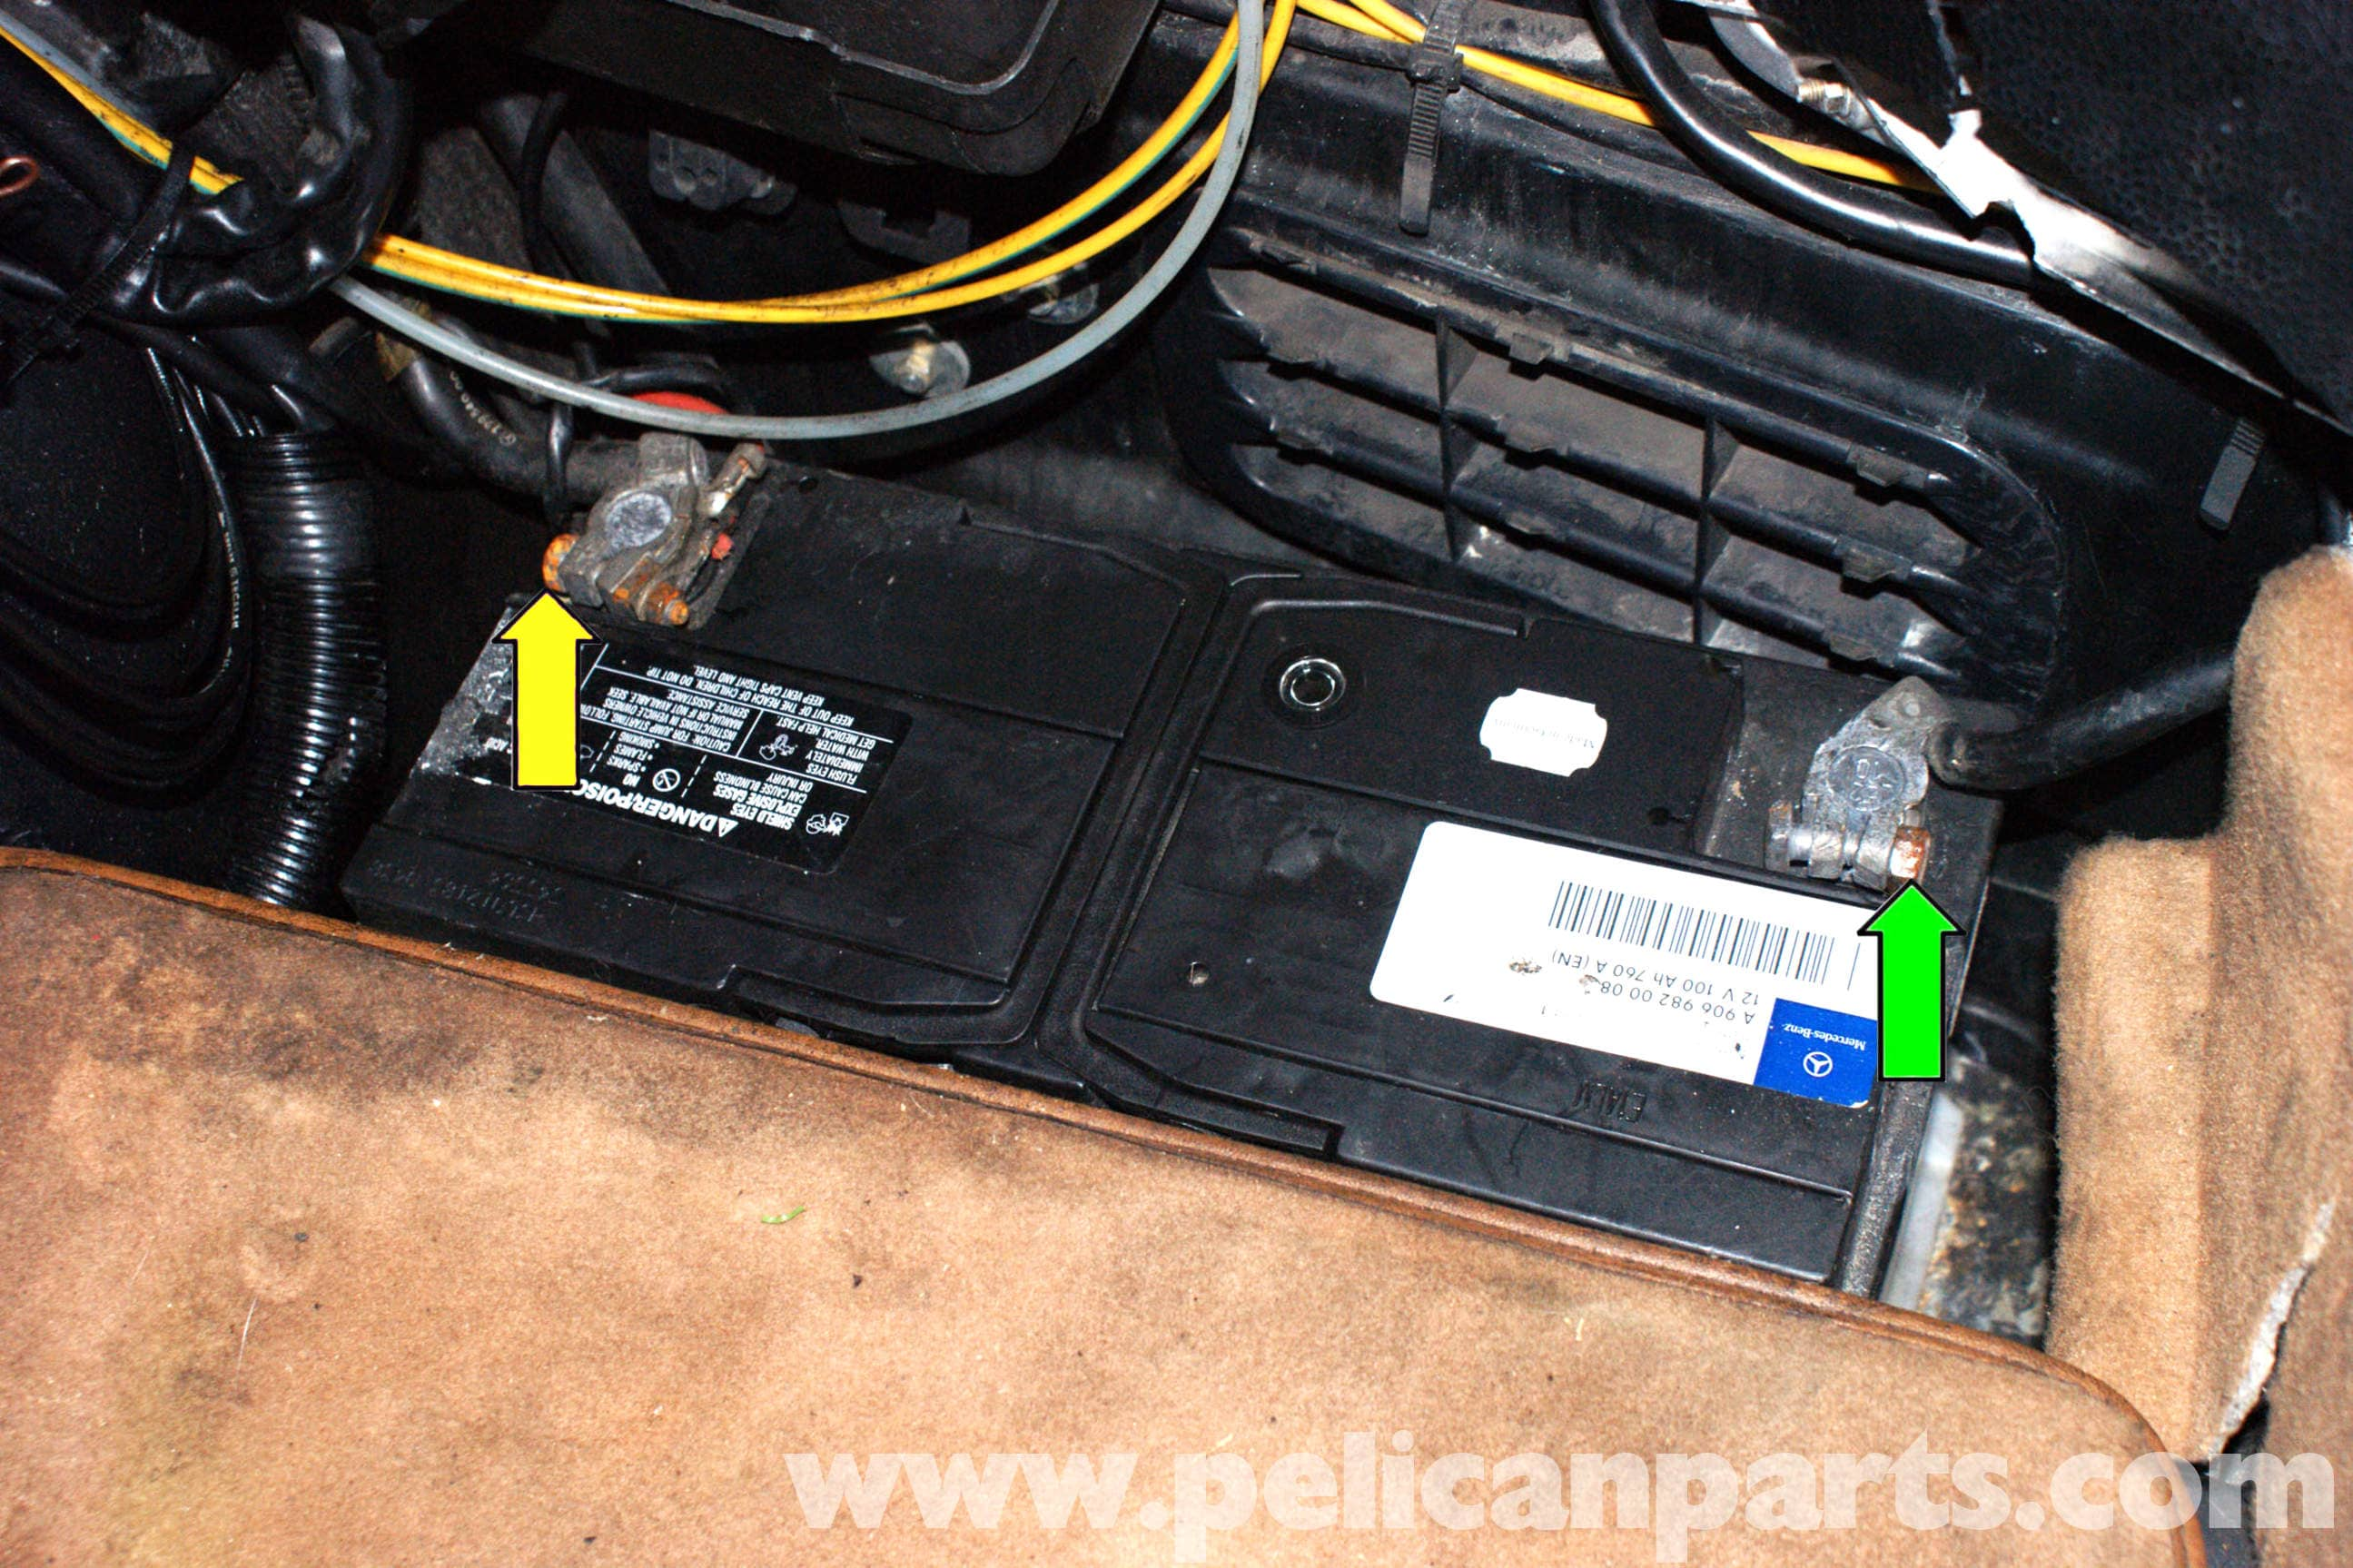 91 Mercedes Fuse Box Data Wiring Diagrams 190e Benz R129 Starter Replacement Sl500 500sl 1991 300sl